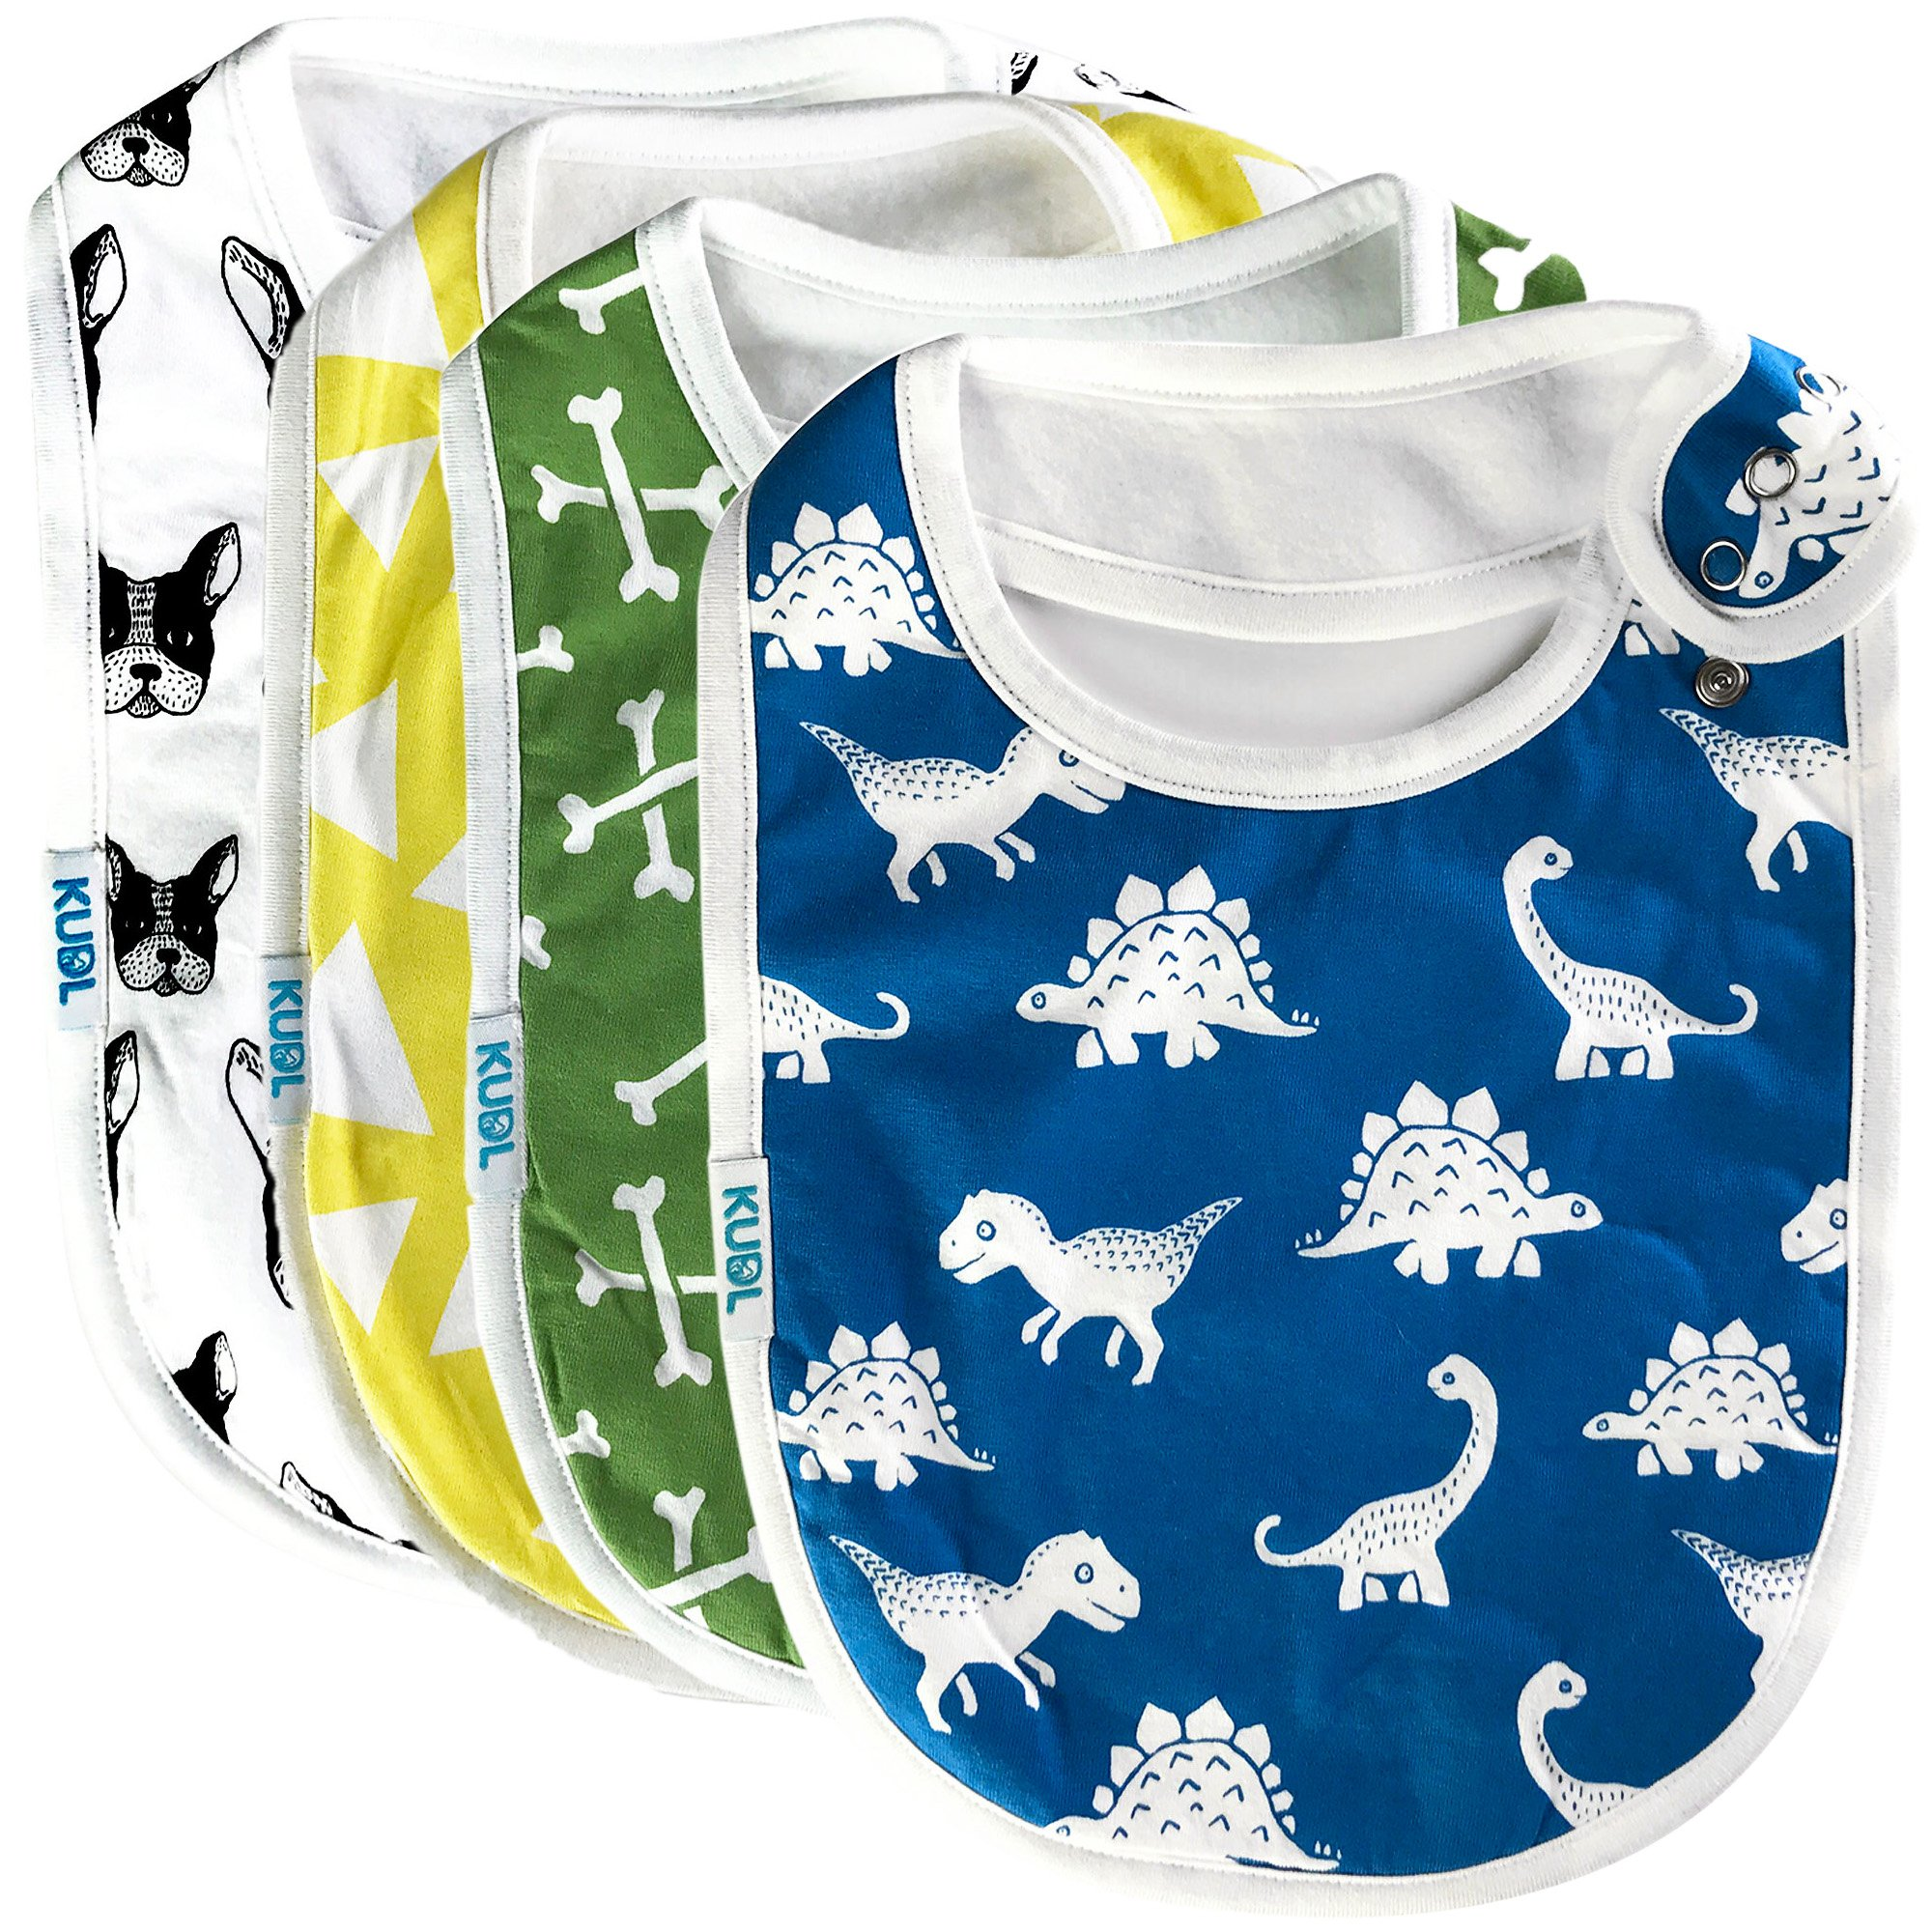 Premium Cute Baby Toddler Bibs Burp Burpy Cloths 4 Pack Gift Set Soft Absorbent Extra LARGE Feeding Reflux Drool Teething Bibs,Triple Adjustable Snap Buttons, Funny Boys & Girls